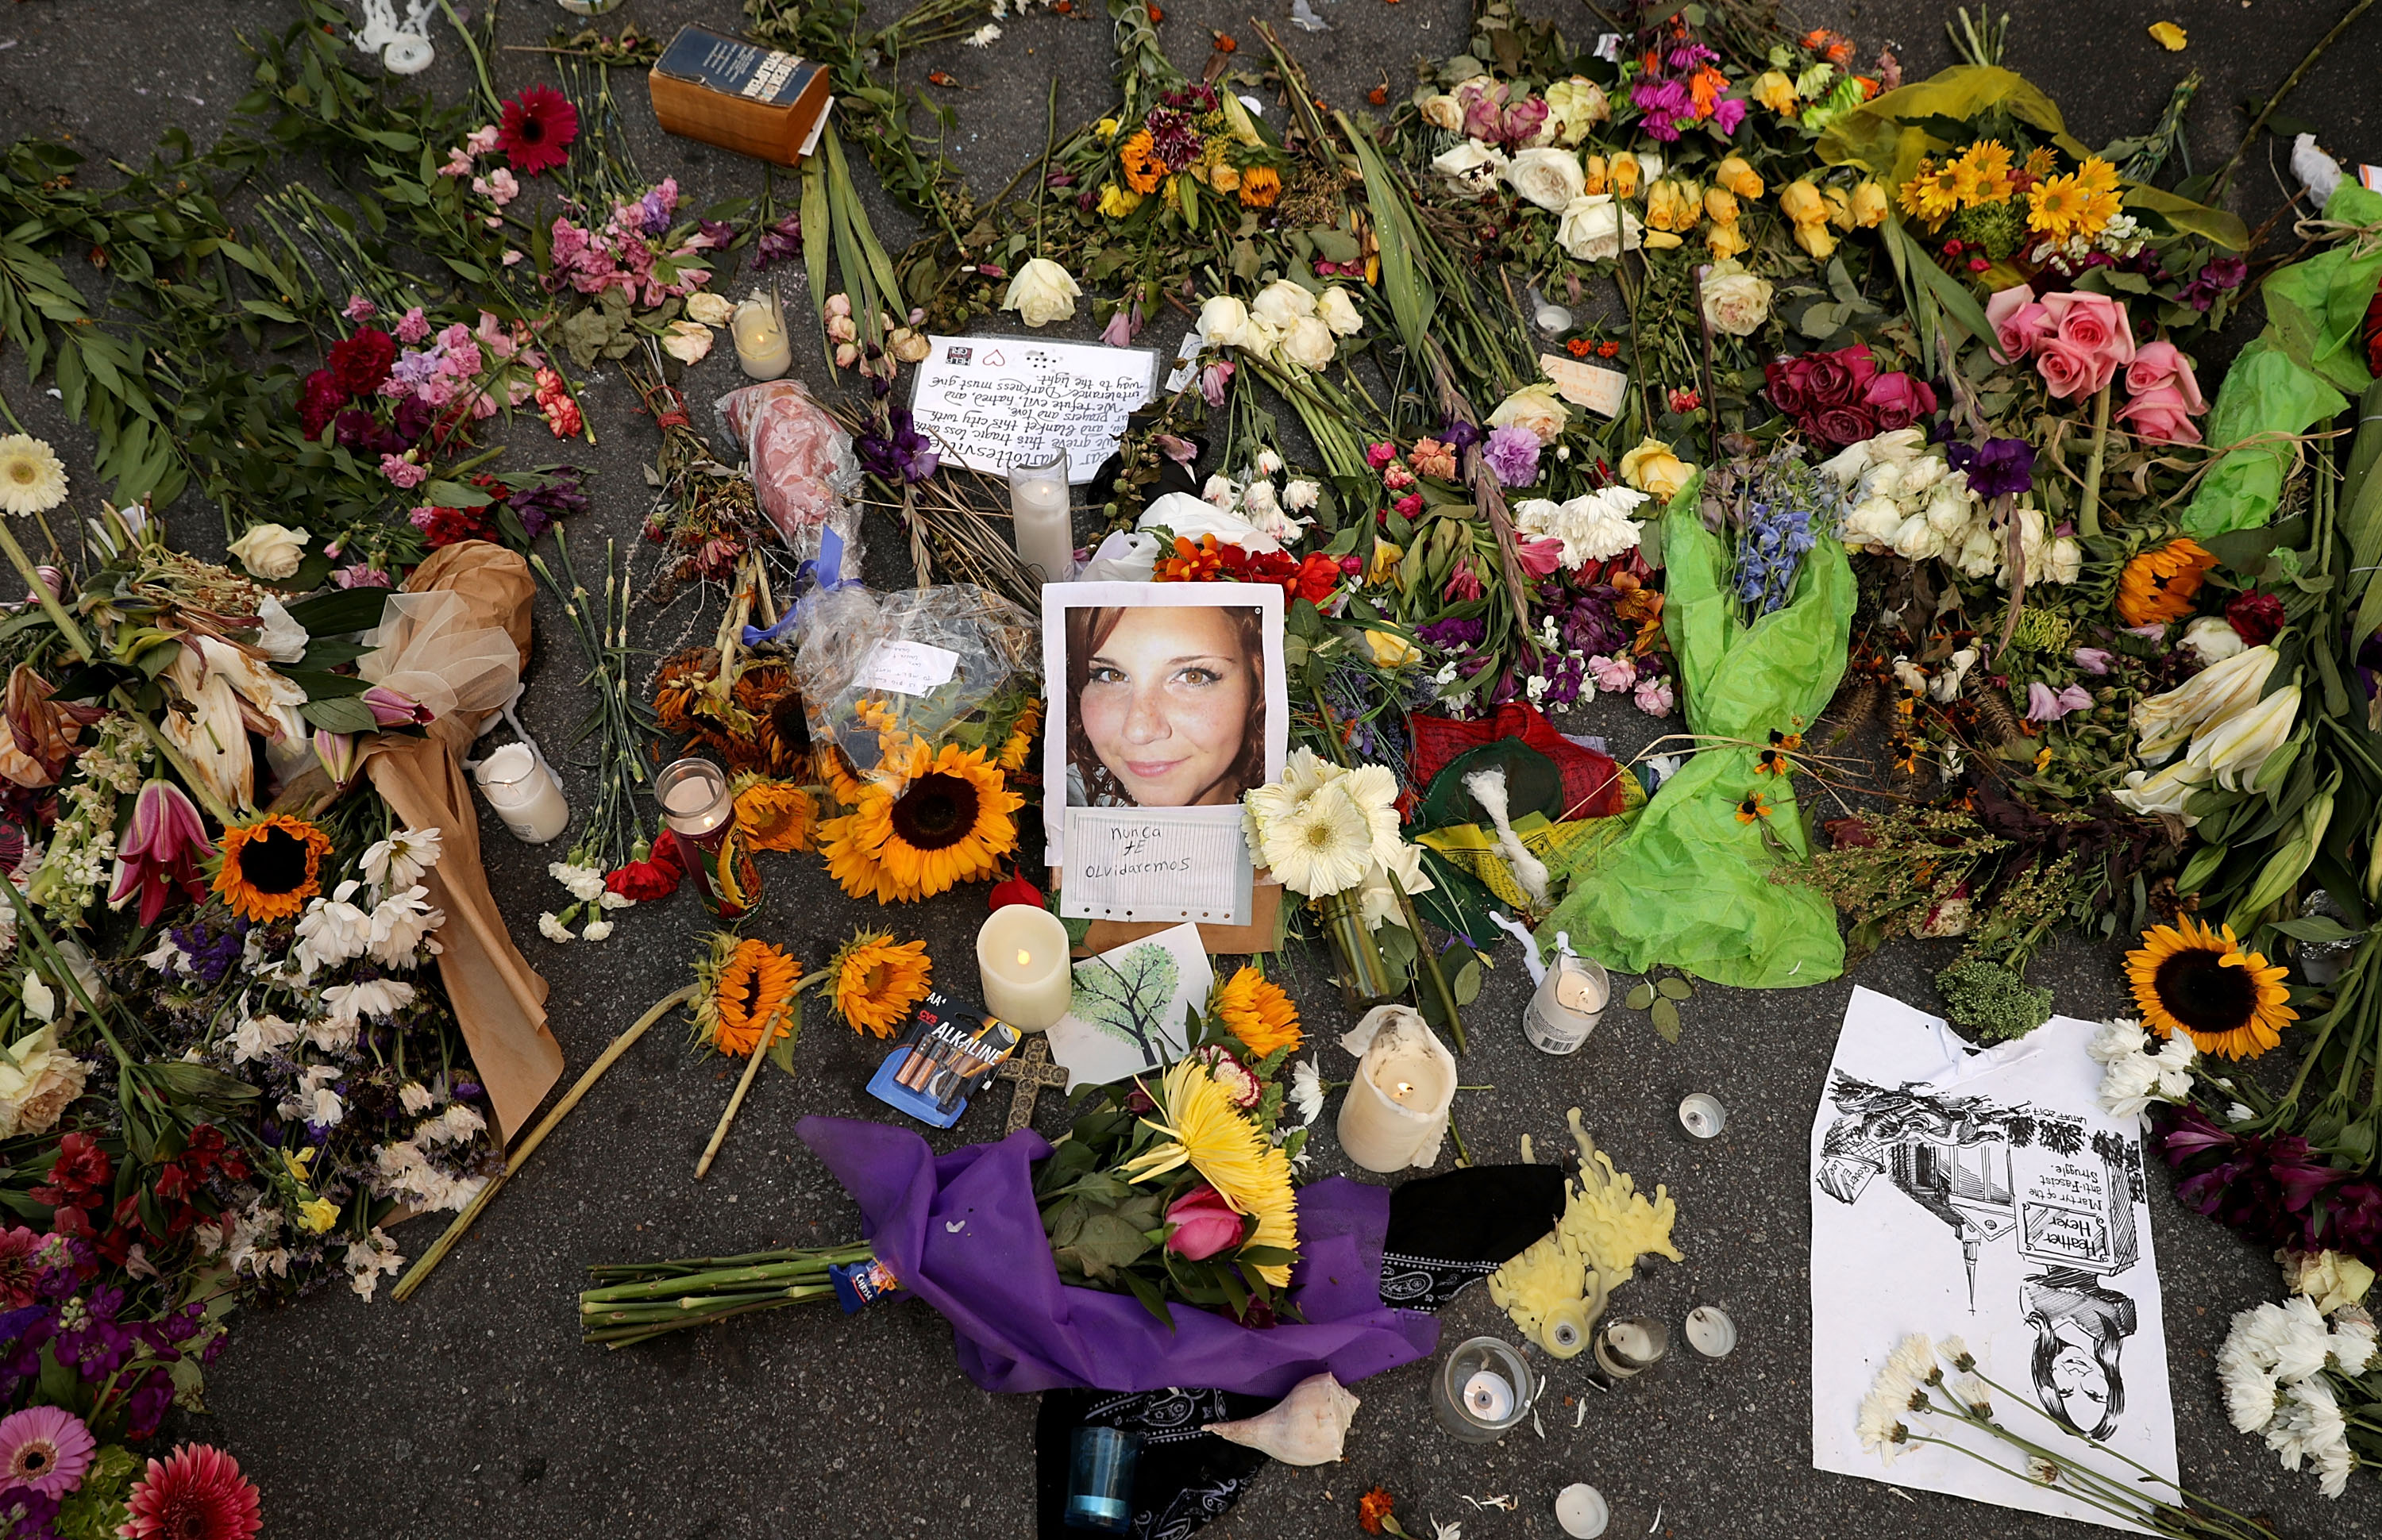 Flowers, candles, and chalk-written messages surround a photograph of Heather Heyer on the spot where she was killed and 19 others injured when a car slammed into a crowd of people protesting against a white supremacist rally in Charlottesville, Virginia on Aug. 16, 2017. (Chip Somodevilla/Getty Images)